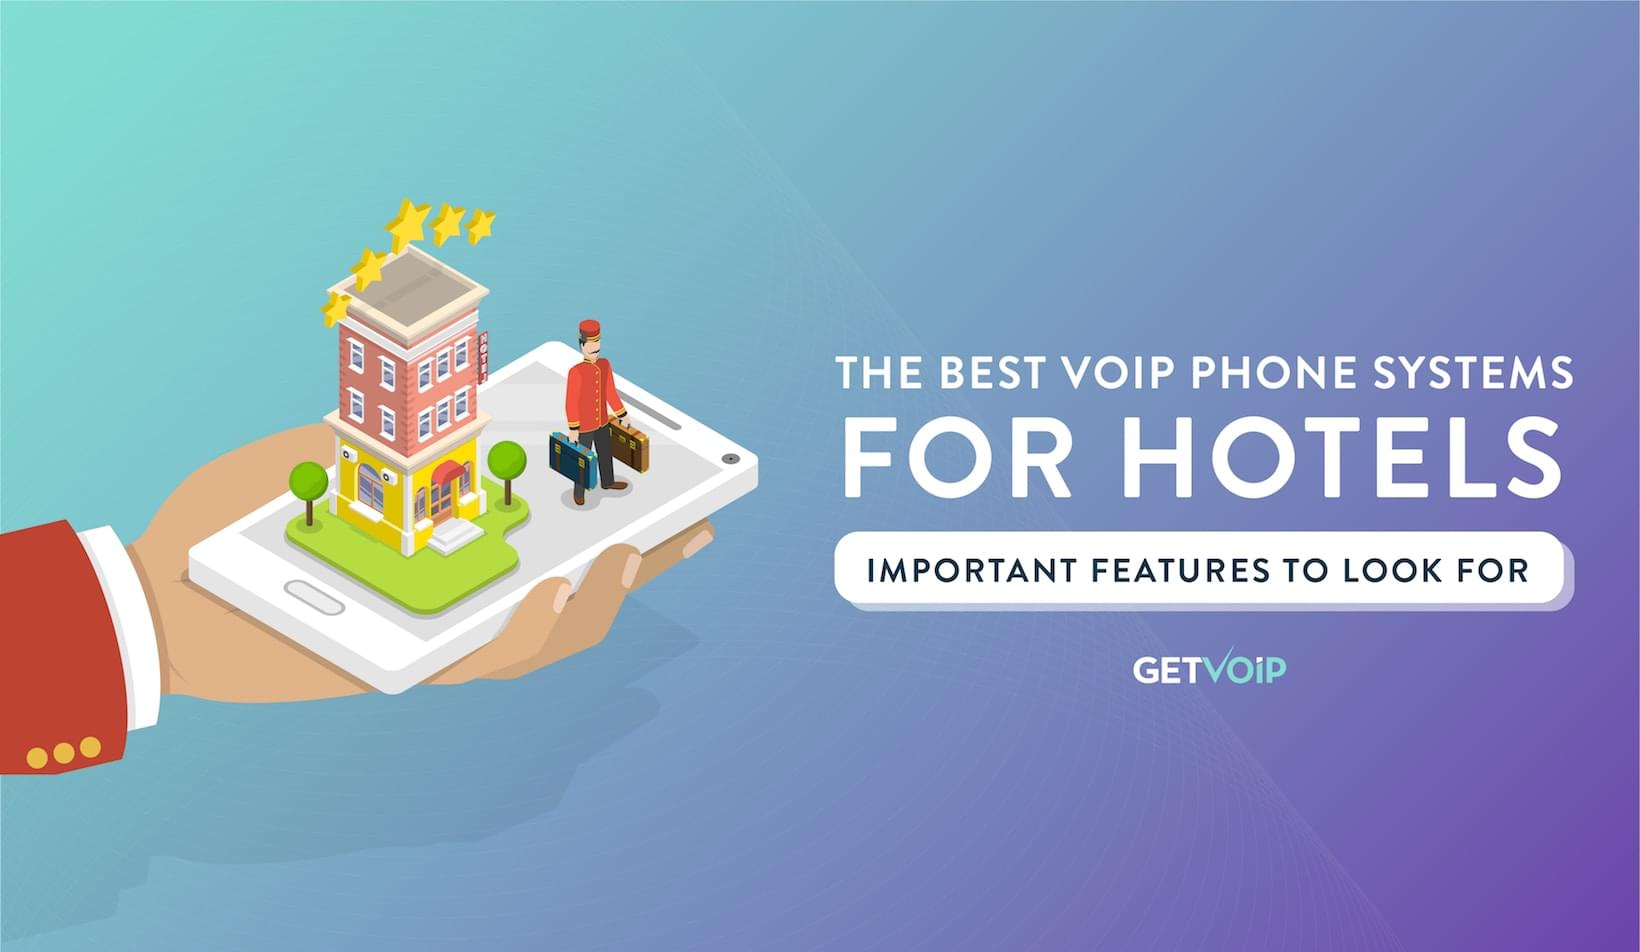 Best Voip Phones 2020 The Best Hotel Phone System Features to Look For | GetVoIP